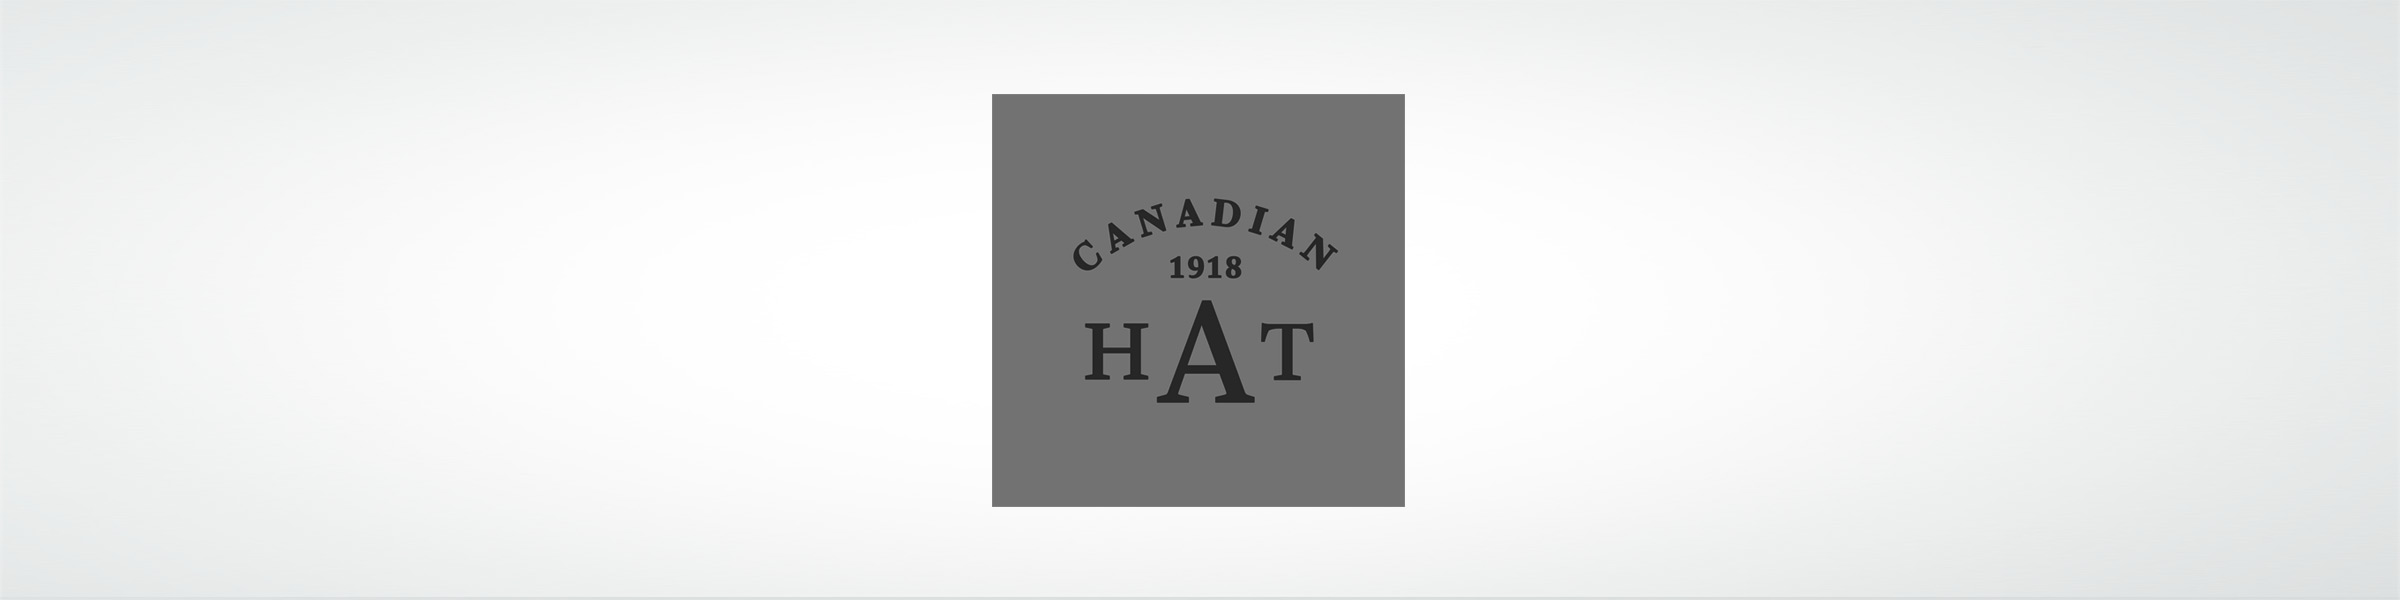 030775 CANADIAN HAT